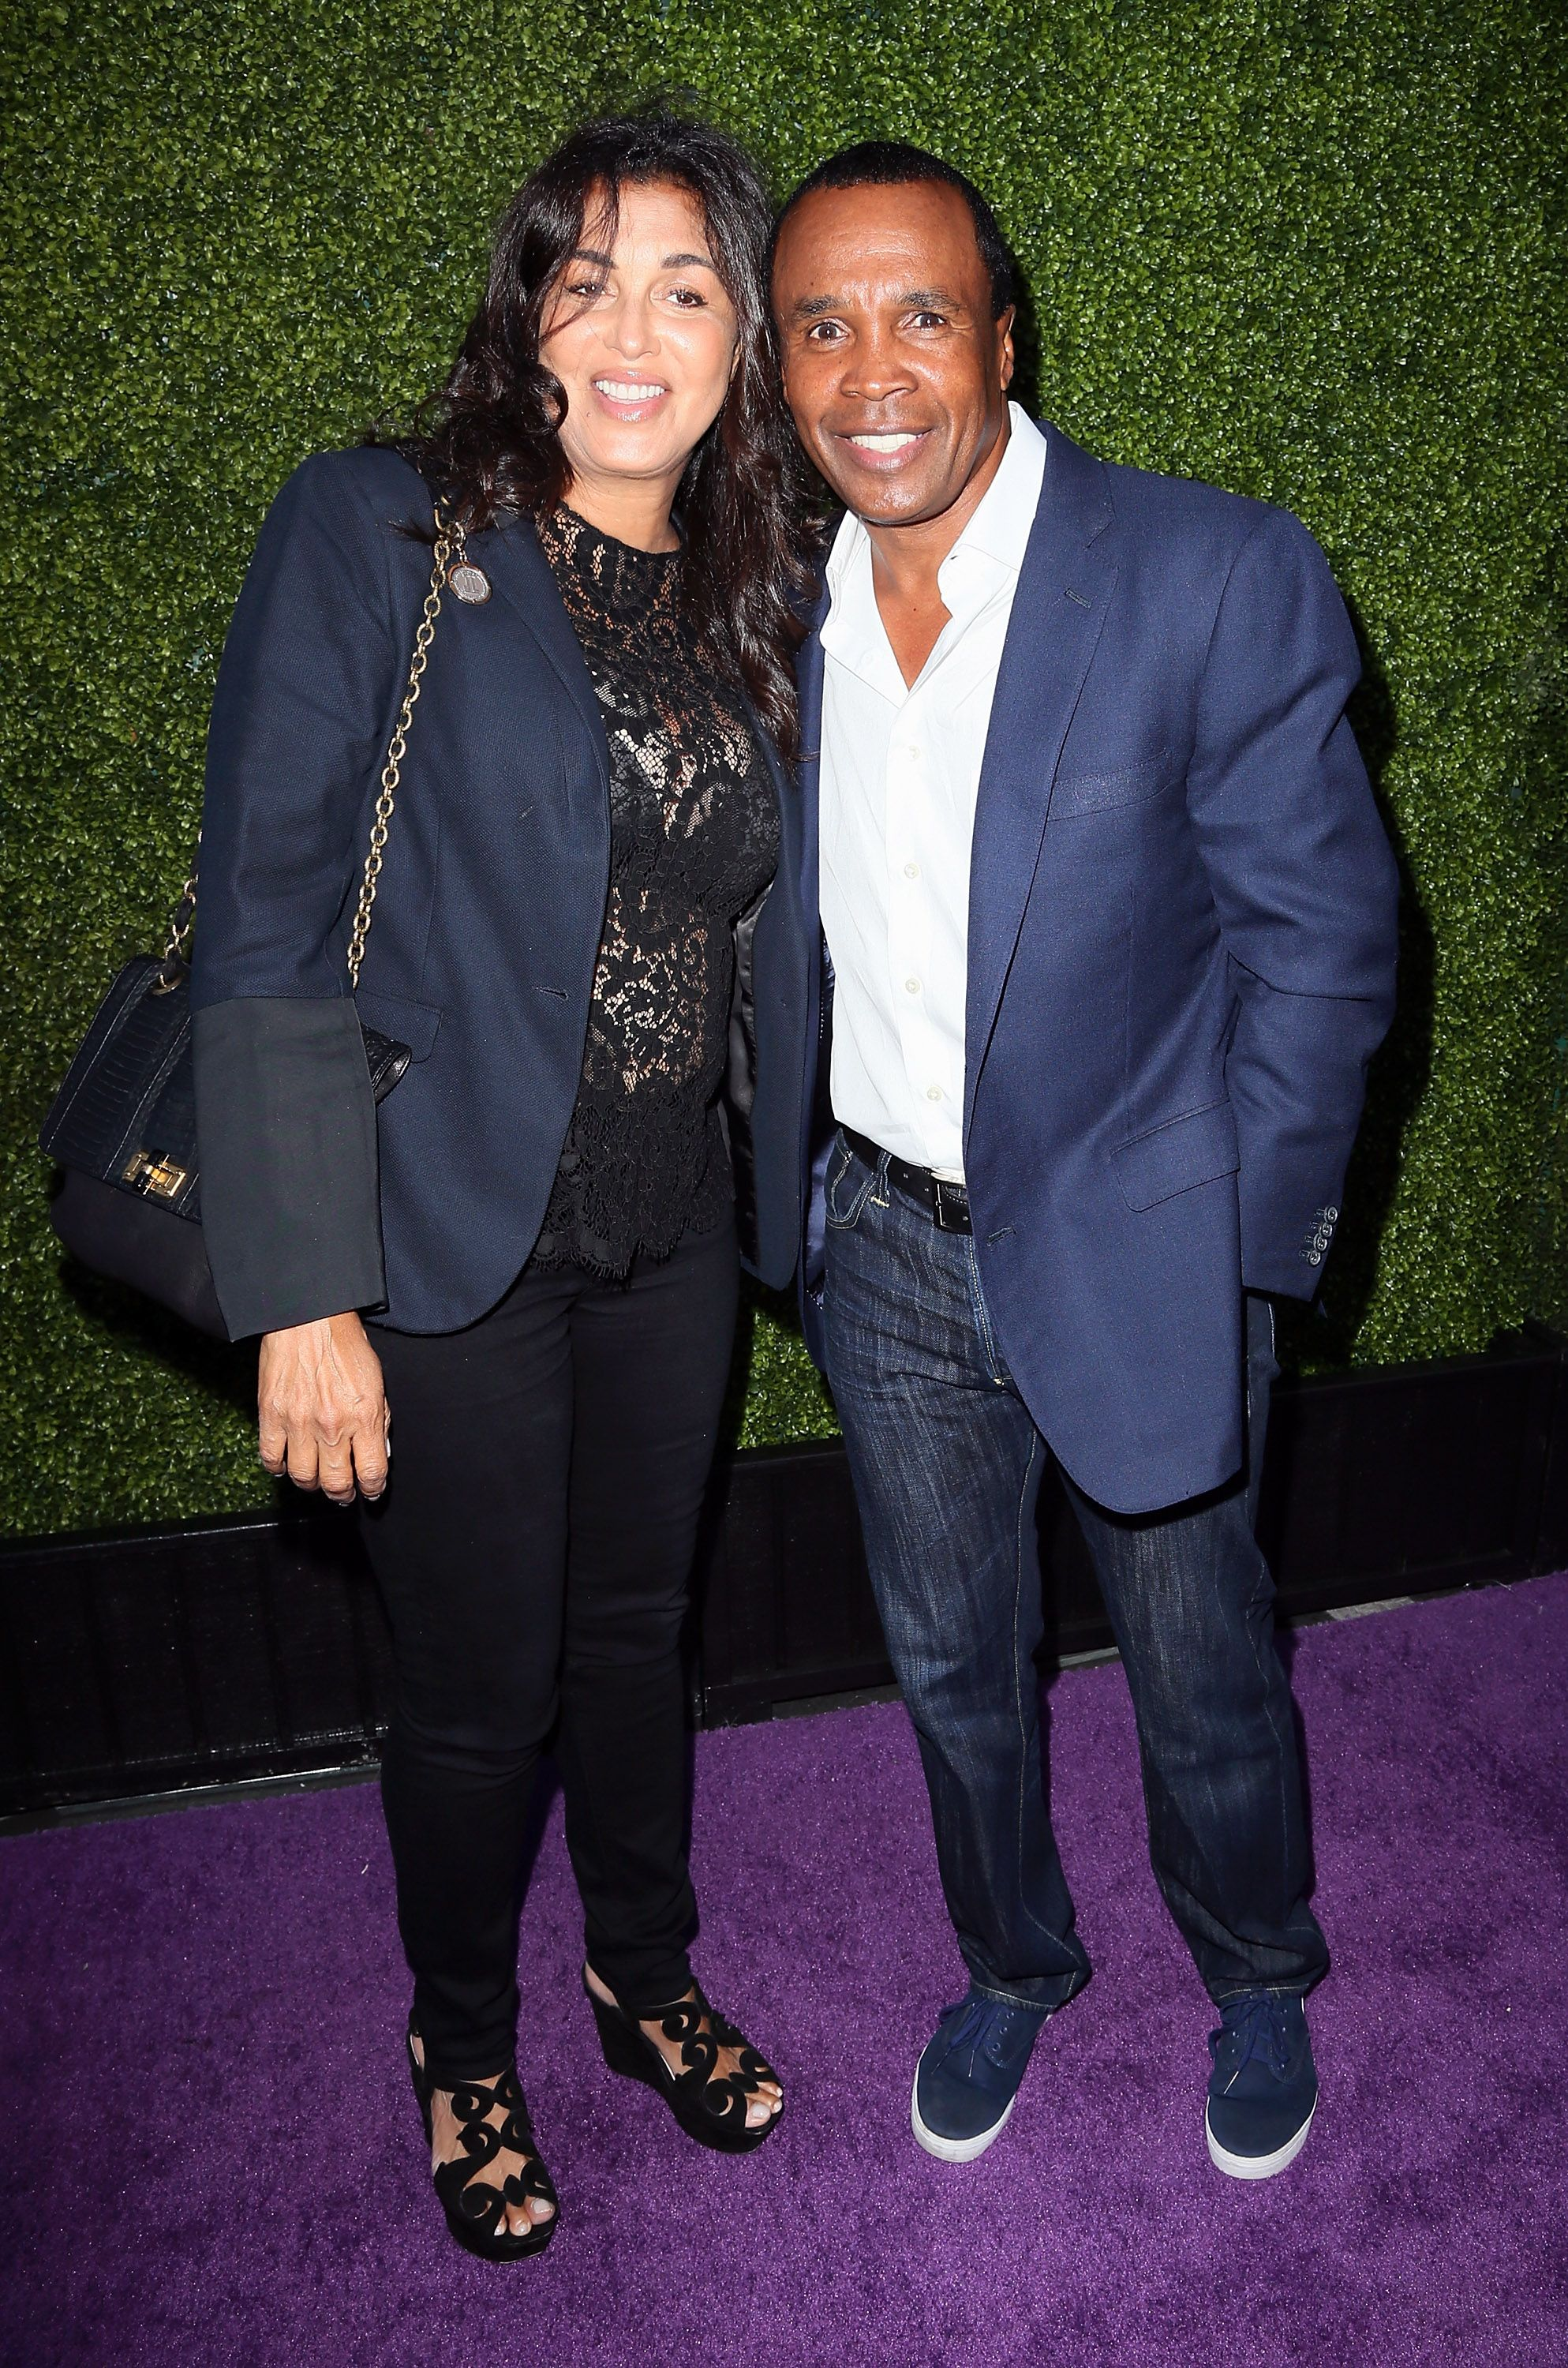 Sugar Ray Leonard and wife Bernadette Robi attend the HollyRod Foundation's 16th Annual DesignCare at The Lot Studios on July 19, 2014 in Los Angeles, California.   Source: Getty Images